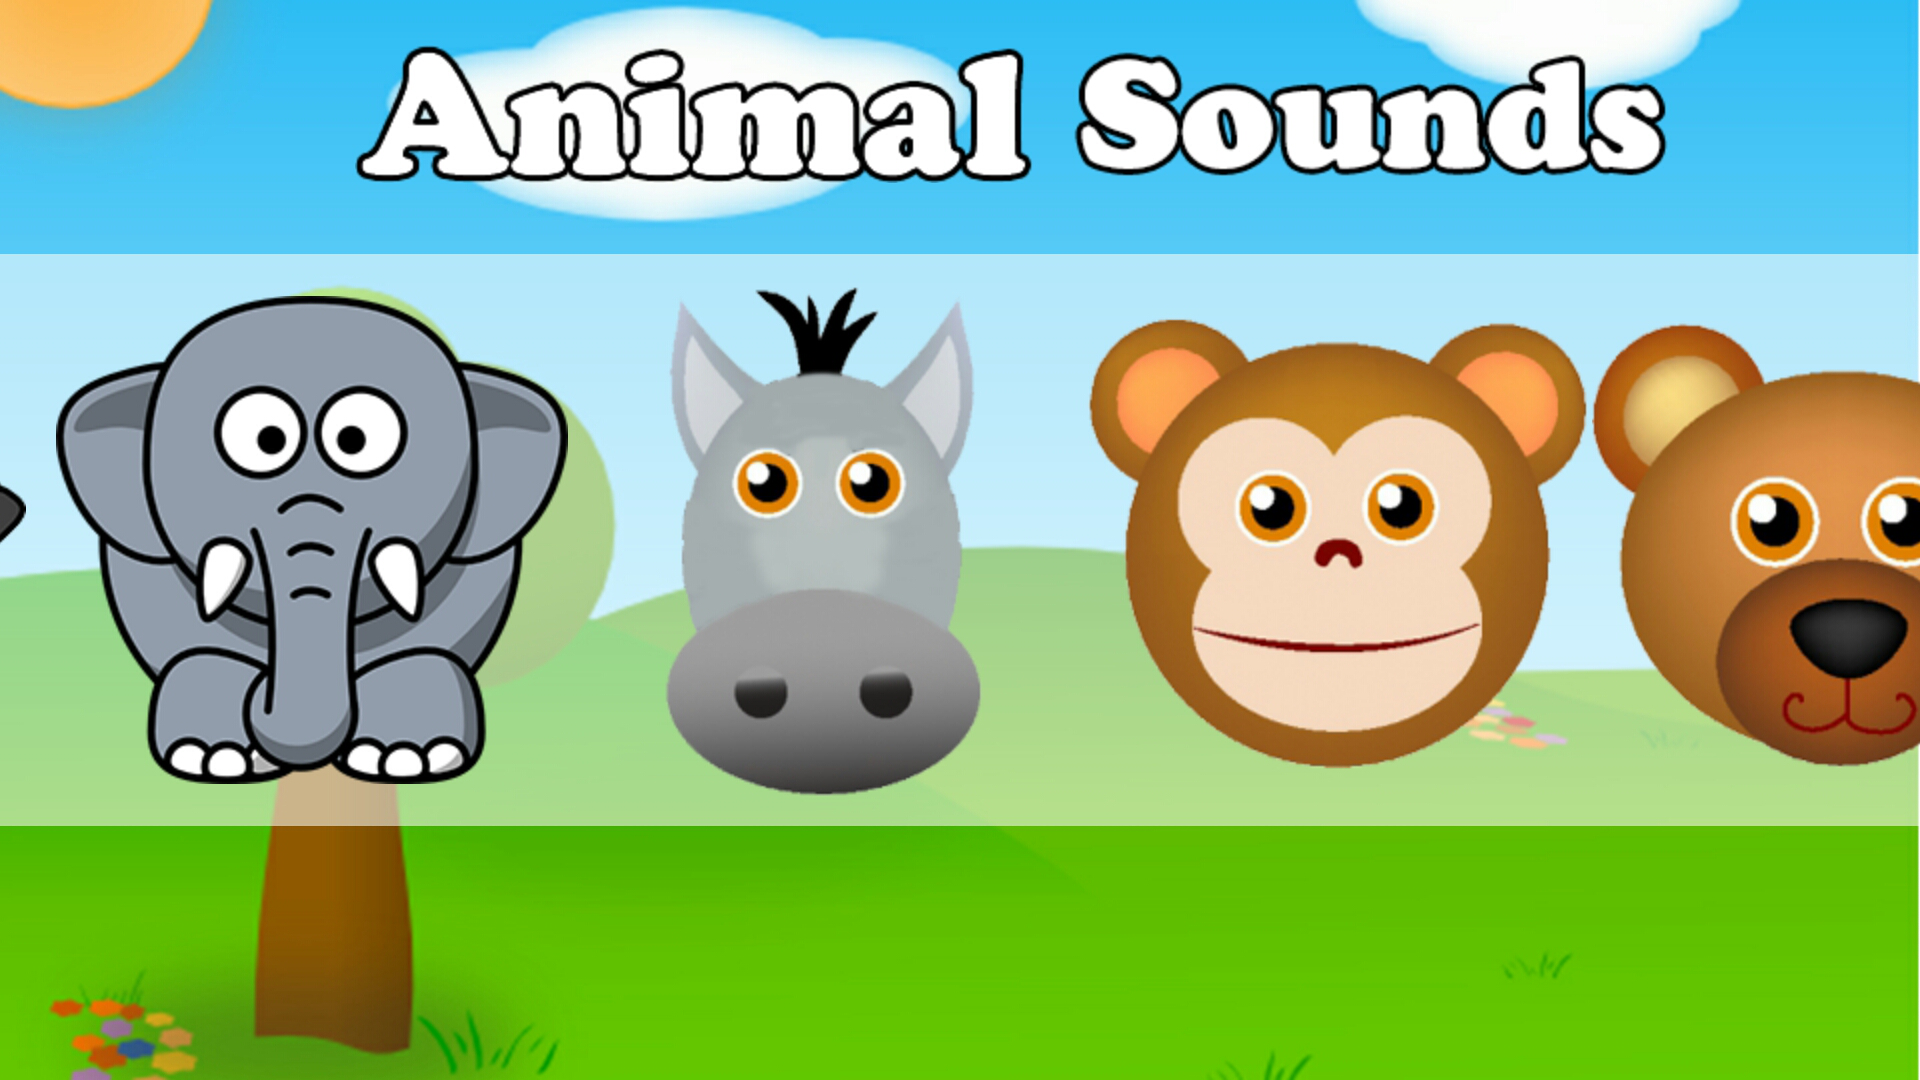 animal sounds description application